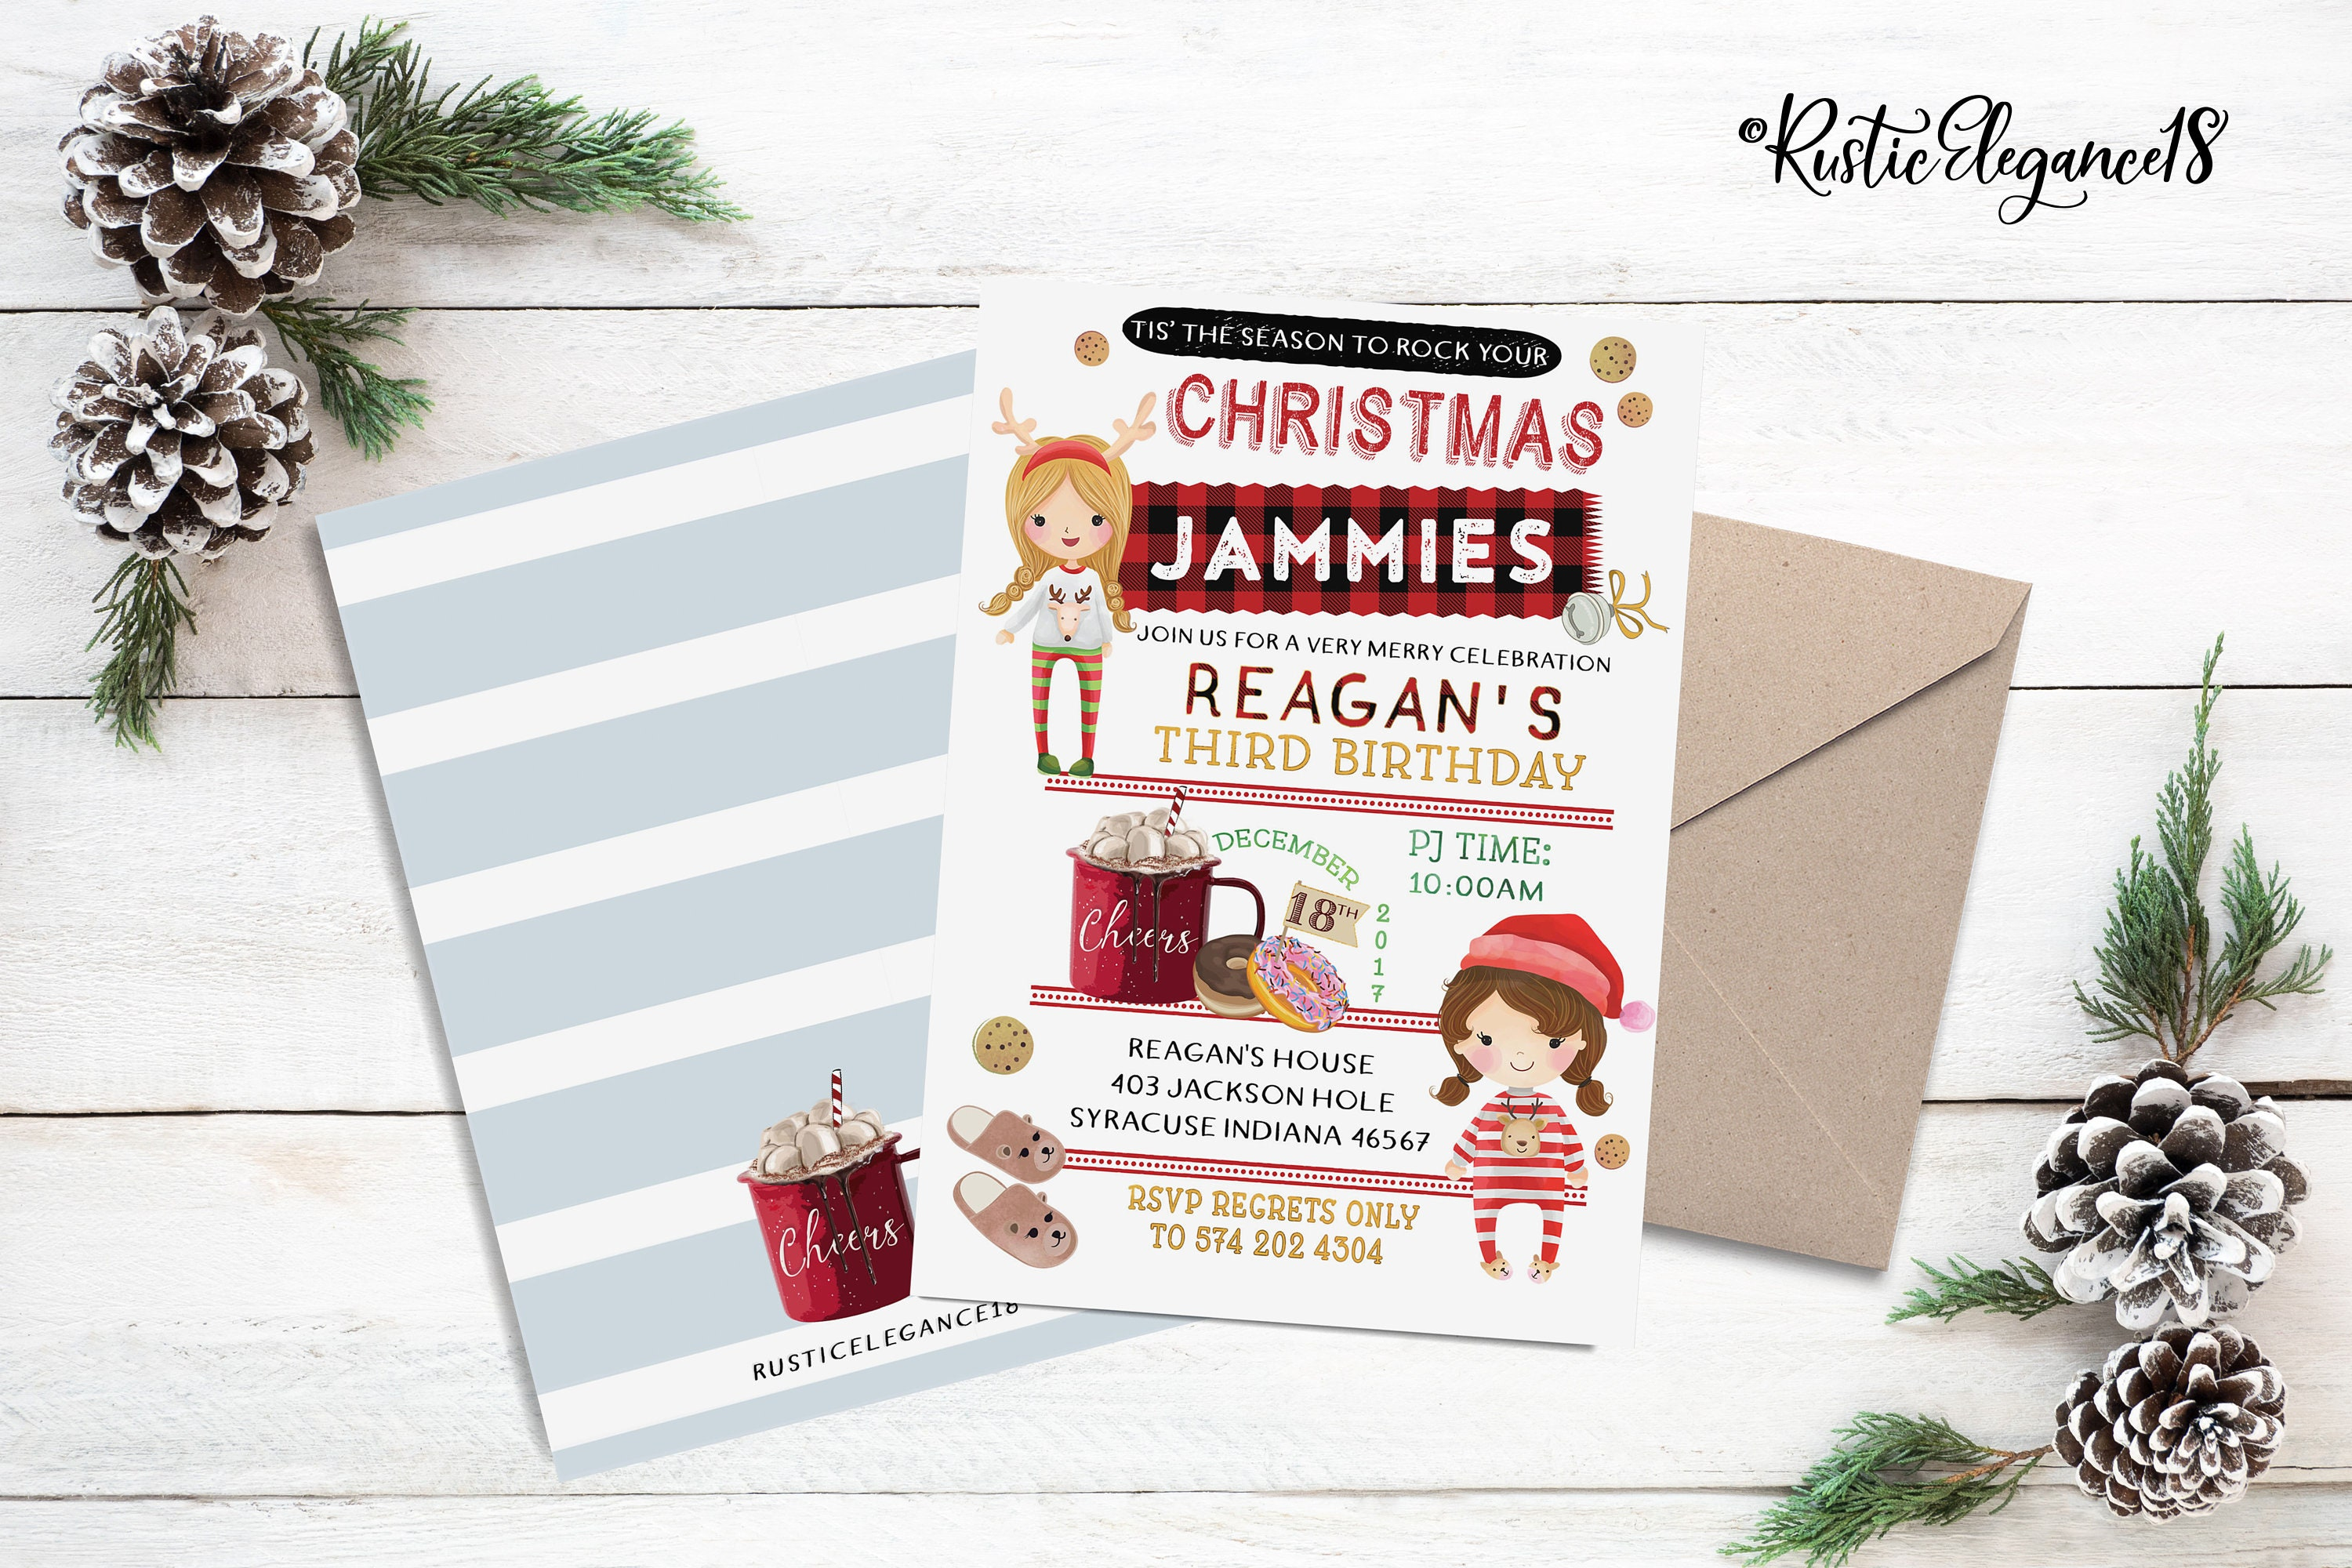 Christmas PJ Jammies Birthday Invite // Christmas Birthday | Etsy